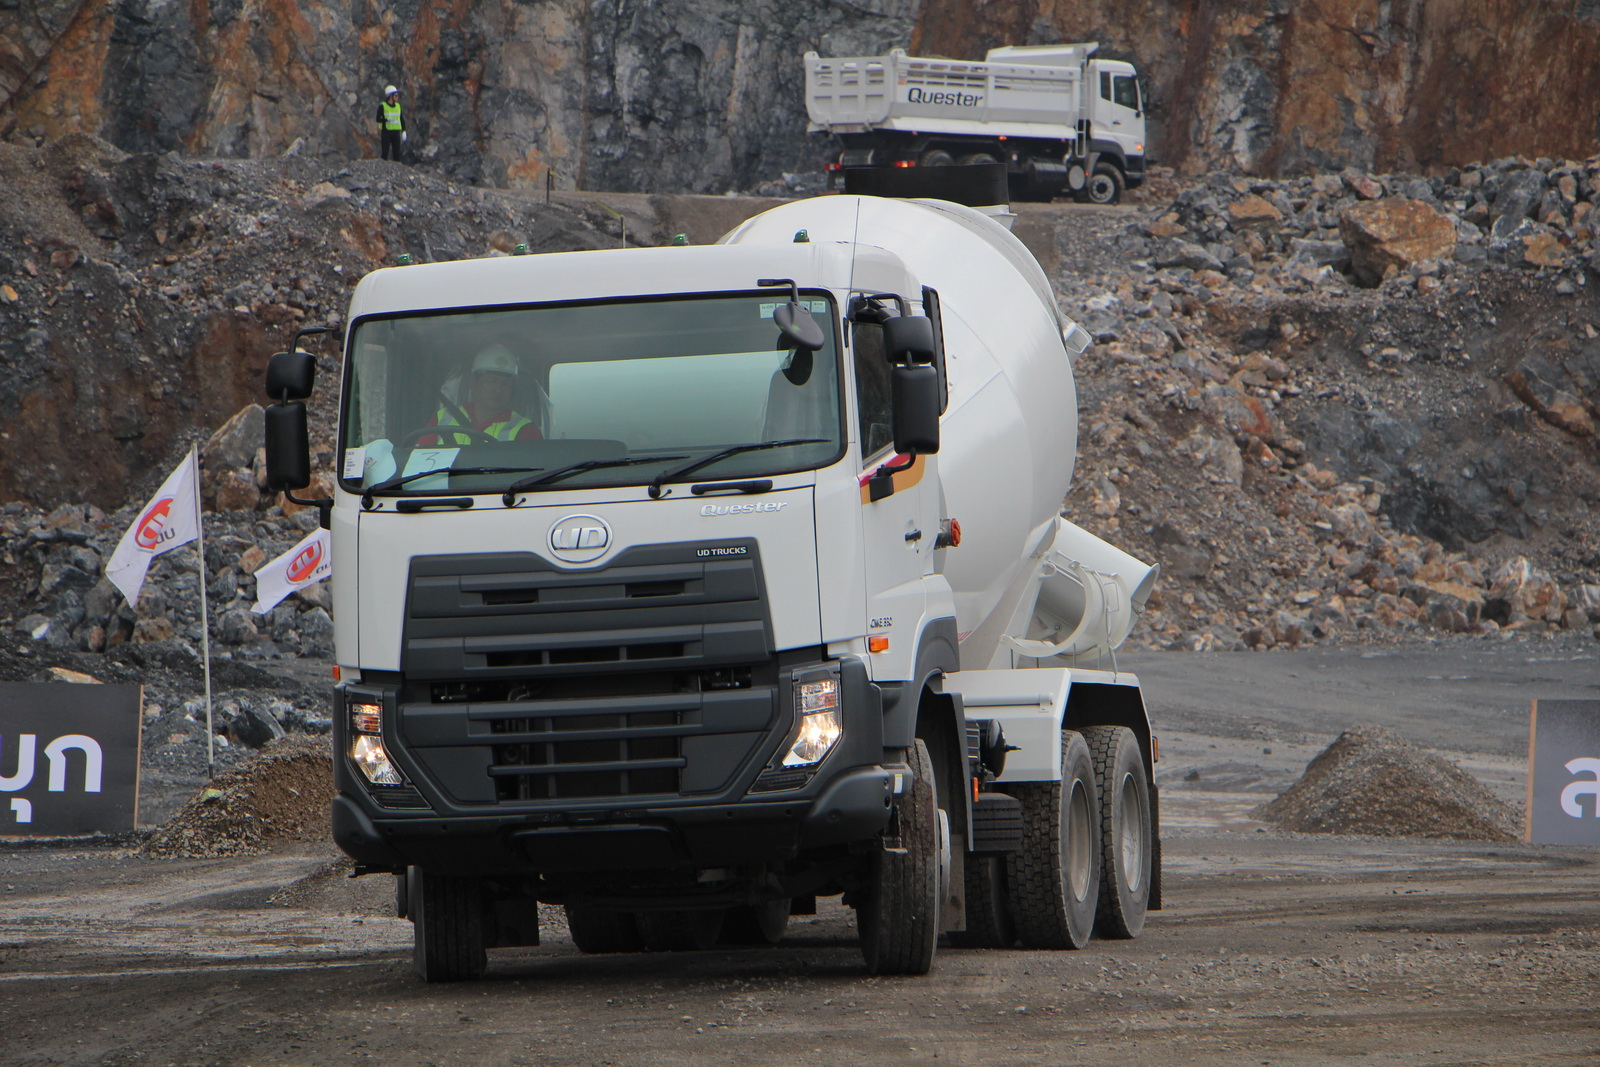 ud_truck_quester_08